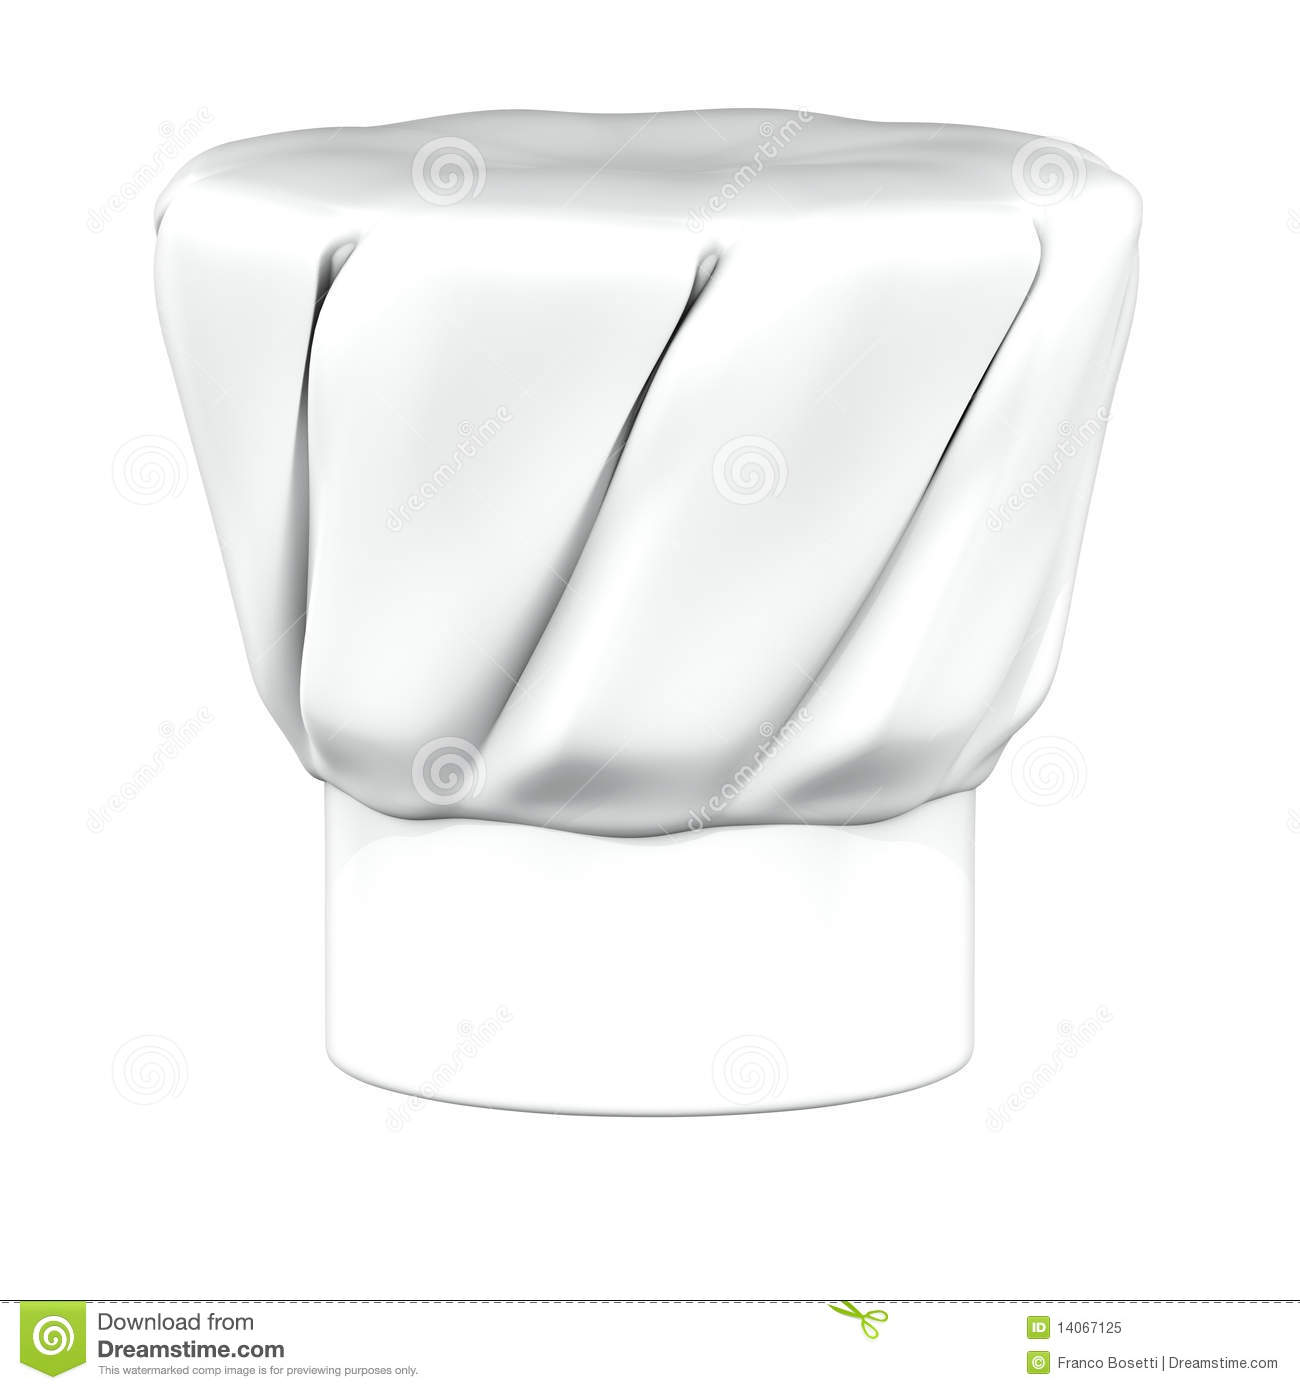 toque cook royalty free stock photo - image: 14067125